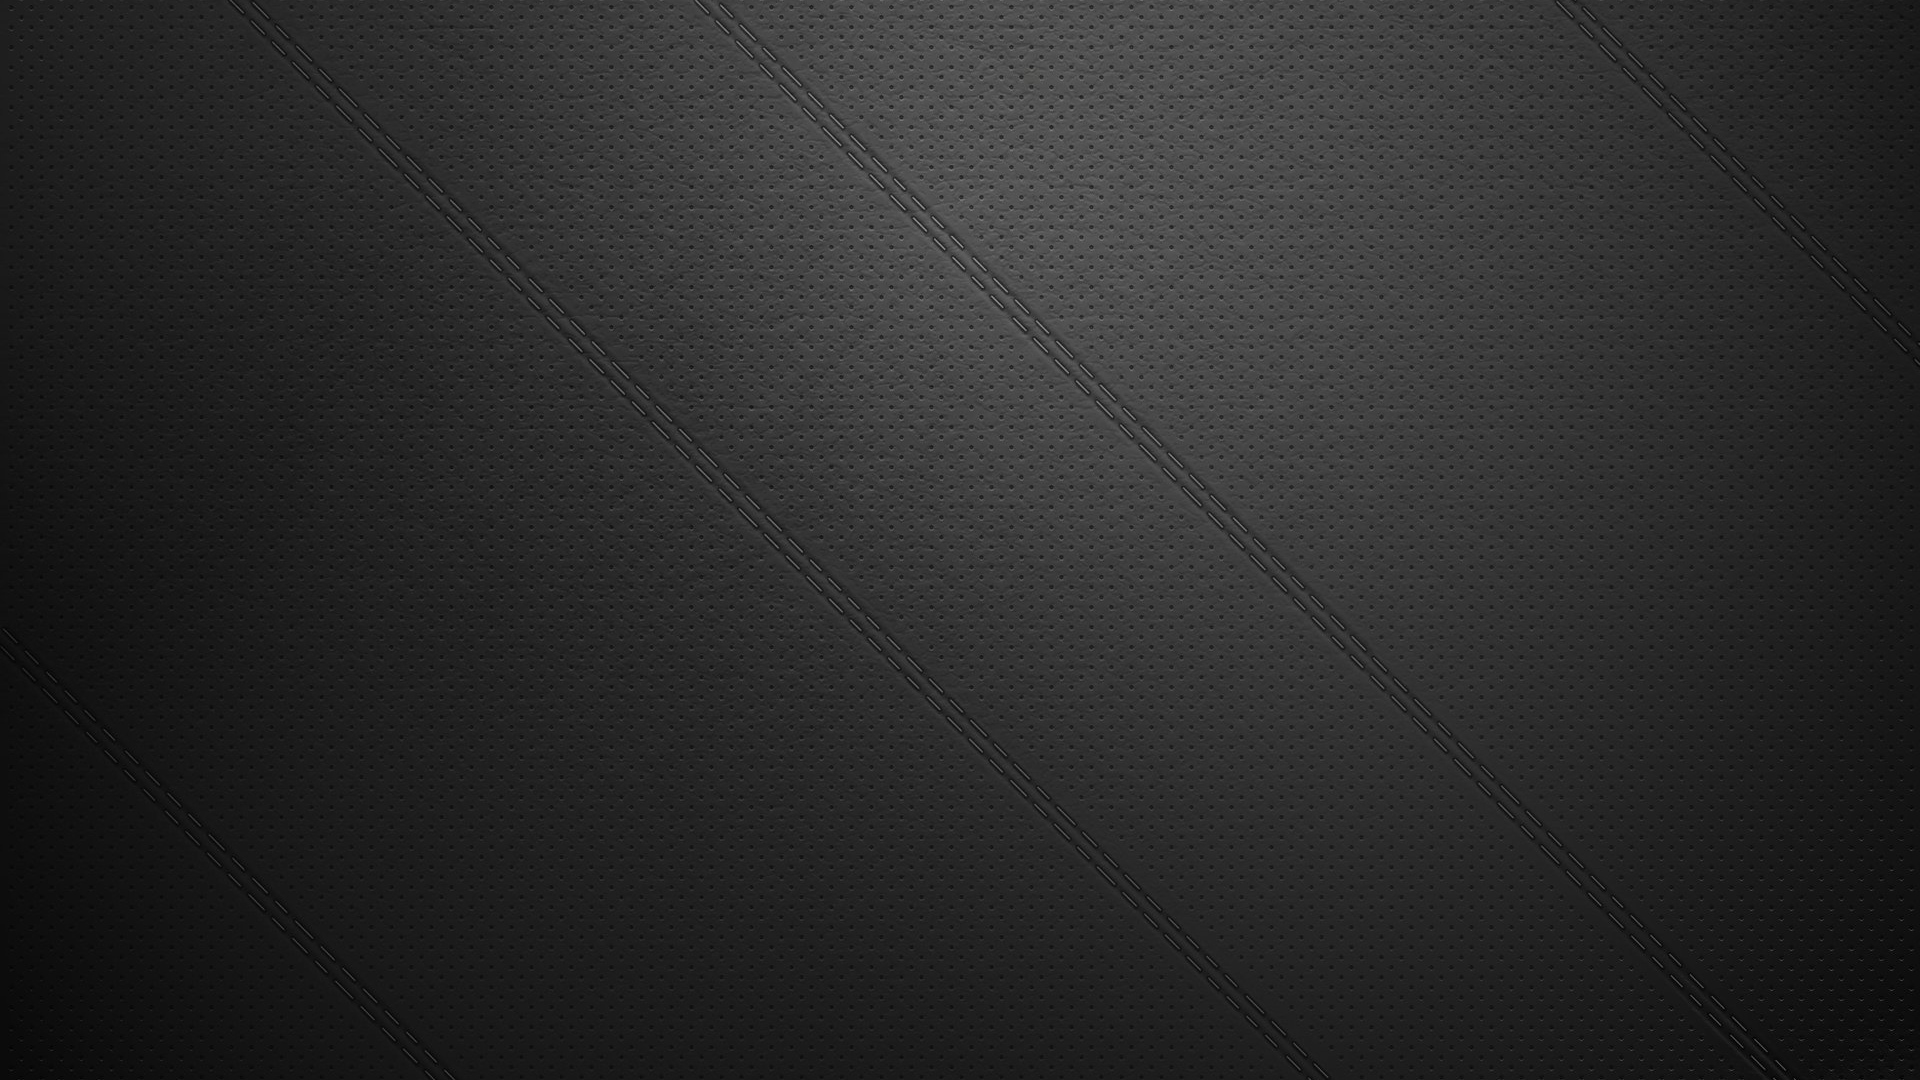 Download Wallpaper 1920x1080 Leather Stitching Thread